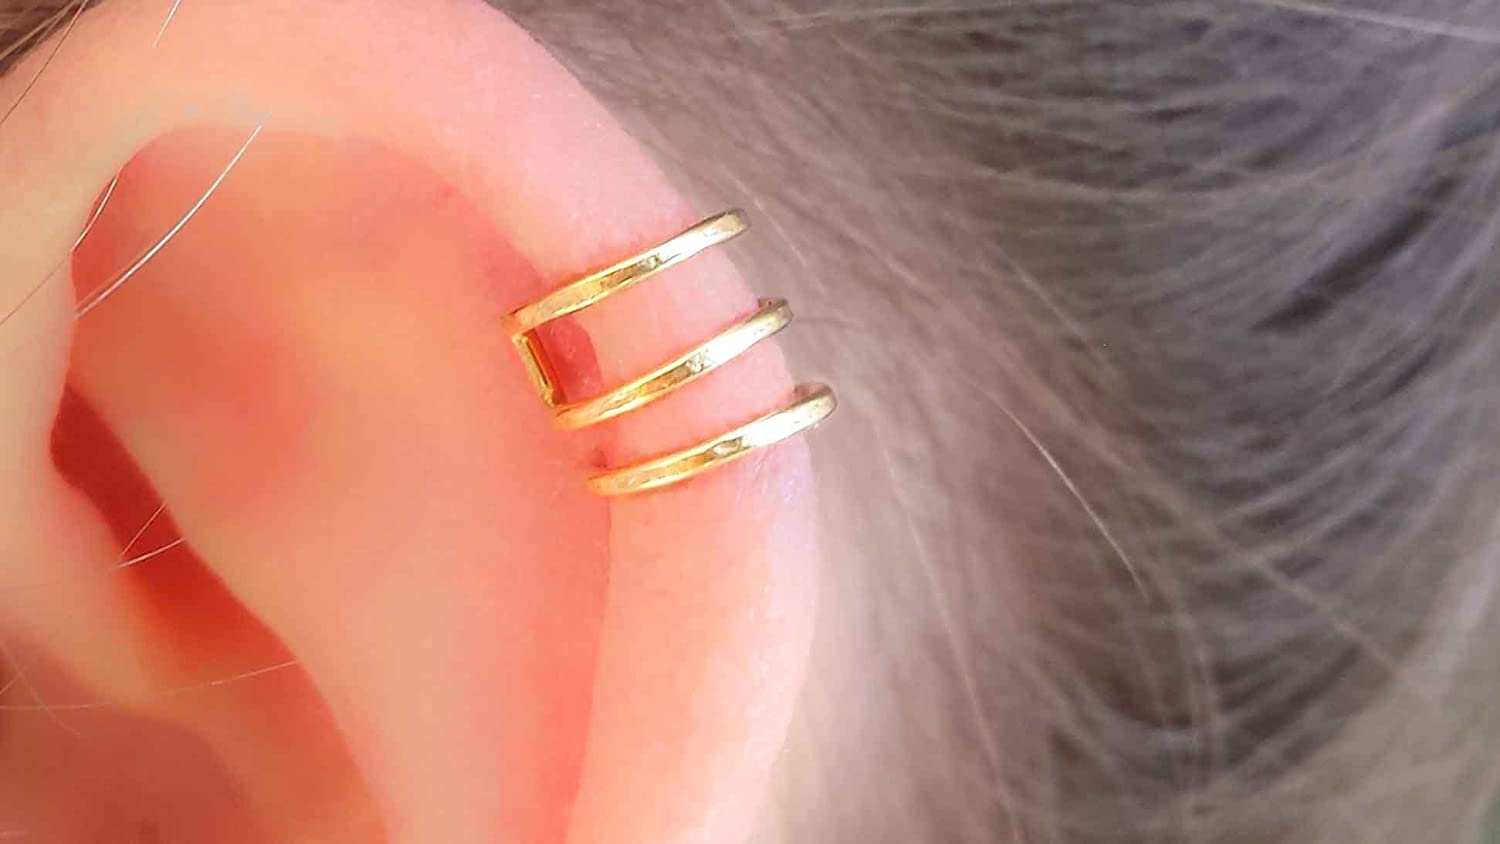 Triple Band Helix Earcuff Hammered 14k gold filled Cuff Earring Ear Wrap Non Pierced Fake Piercing Clip On